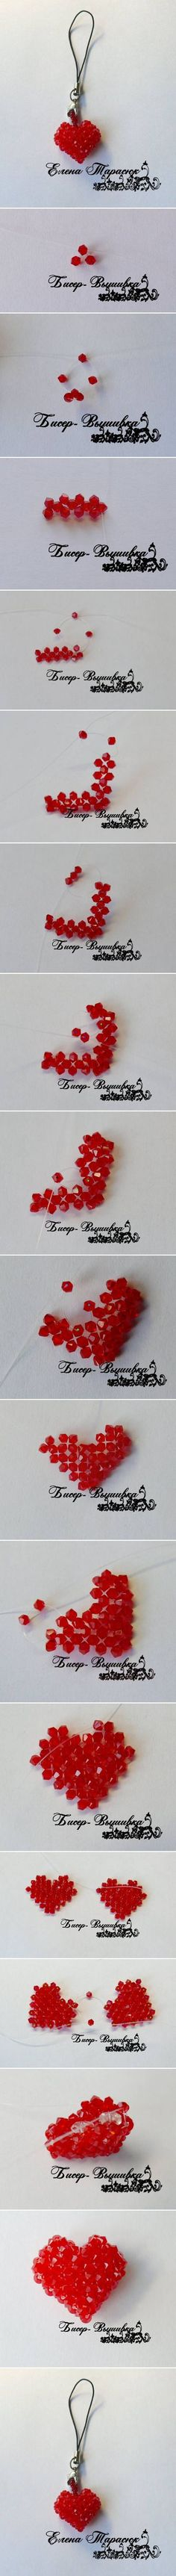 DIY Beads Heart Ornament DIY Projects / UsefulDIY.com